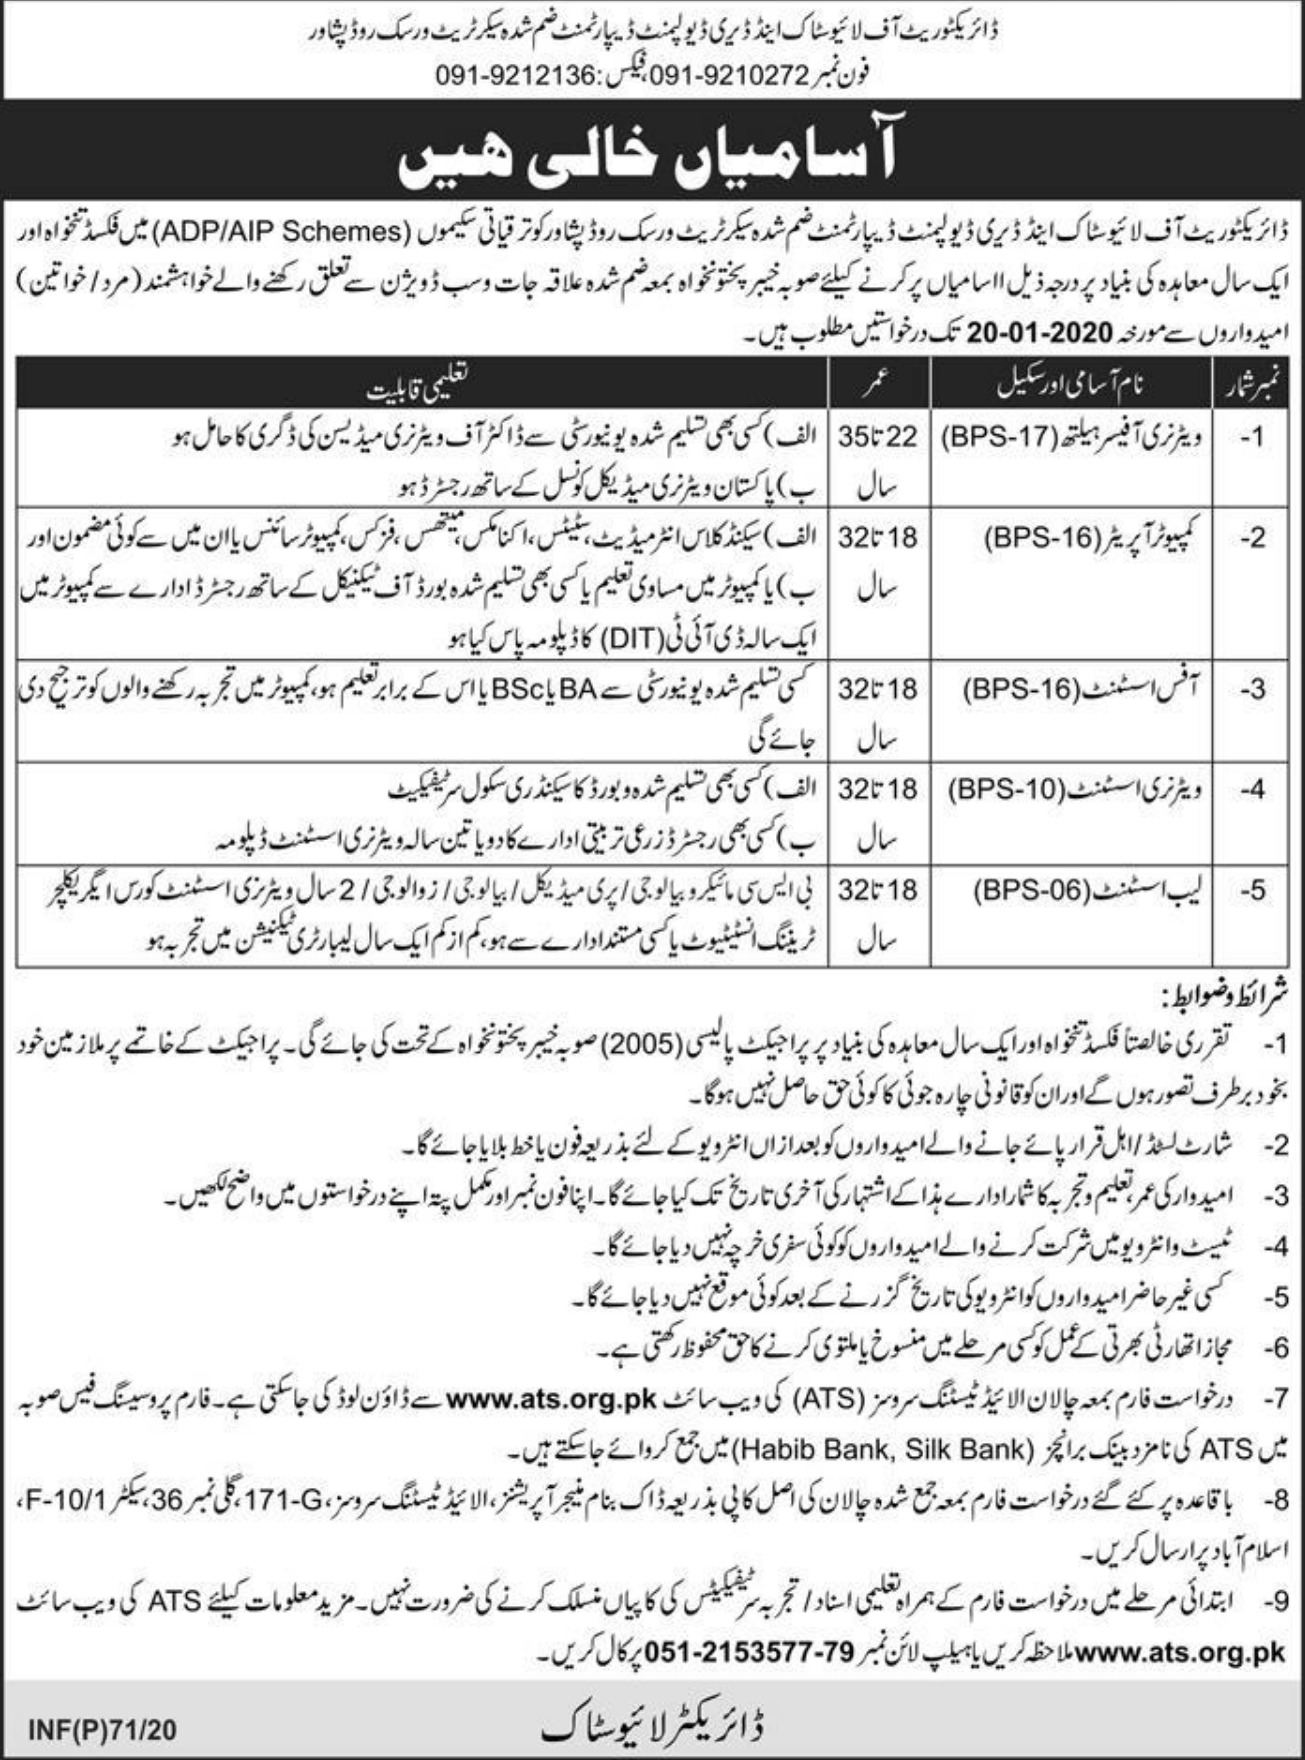 Directorate of Livestock & Dairy Development Department Peshawar Jobs 2020 KPK